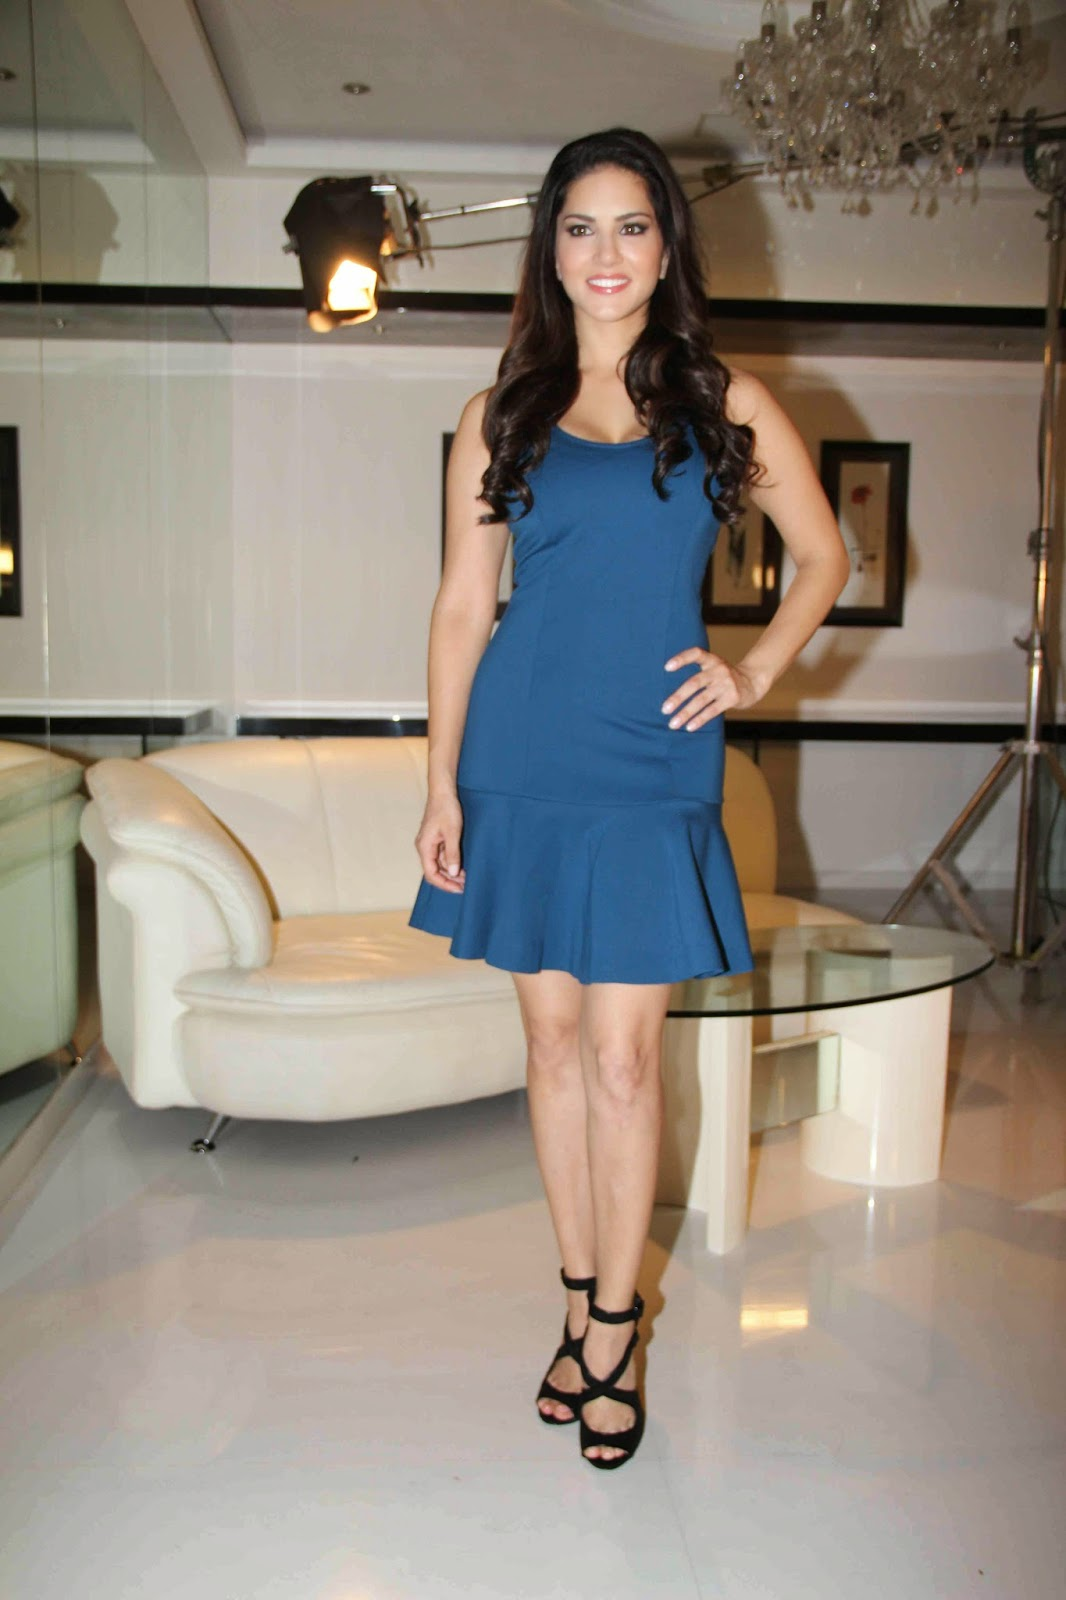 High Quality Bollywood Celebrity Pictures Sunny Leone -9138